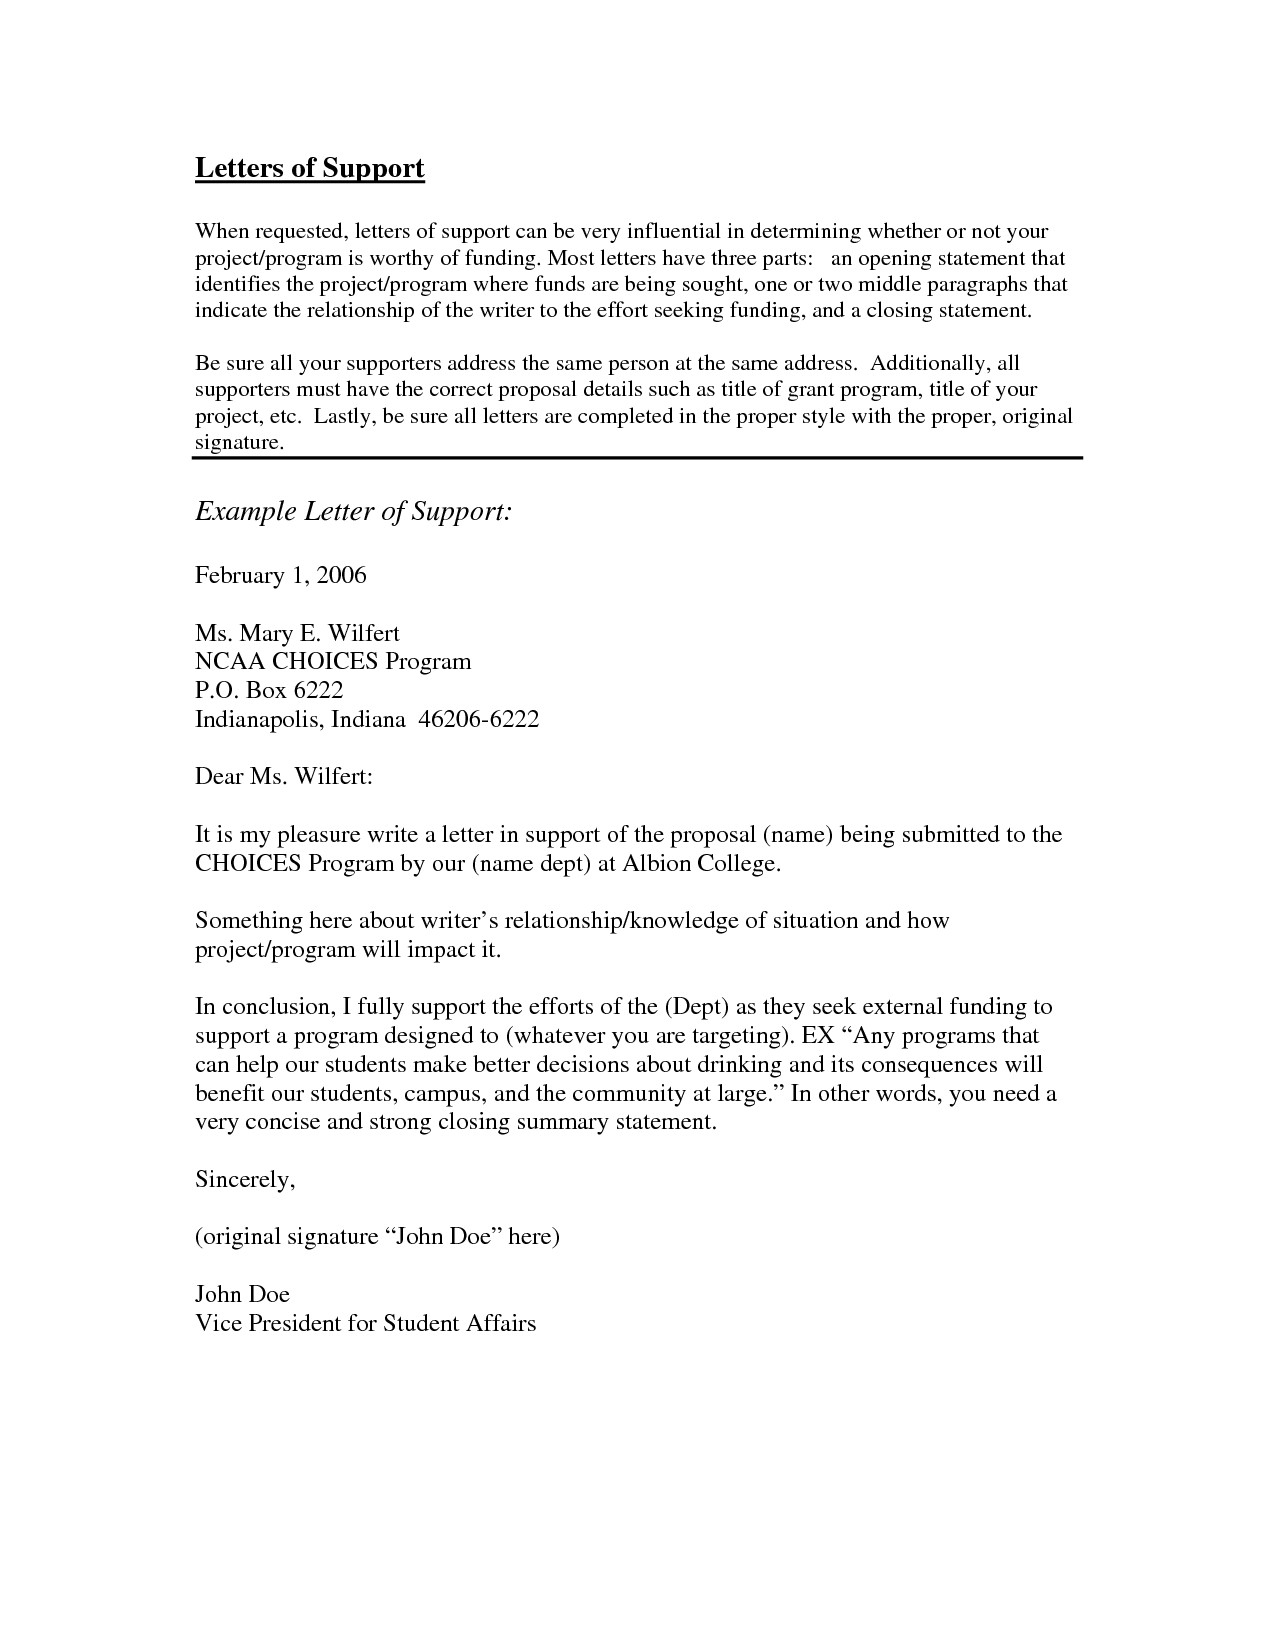 Letter Of Support Template for A Person - Examples Letters Support Letter Support Template